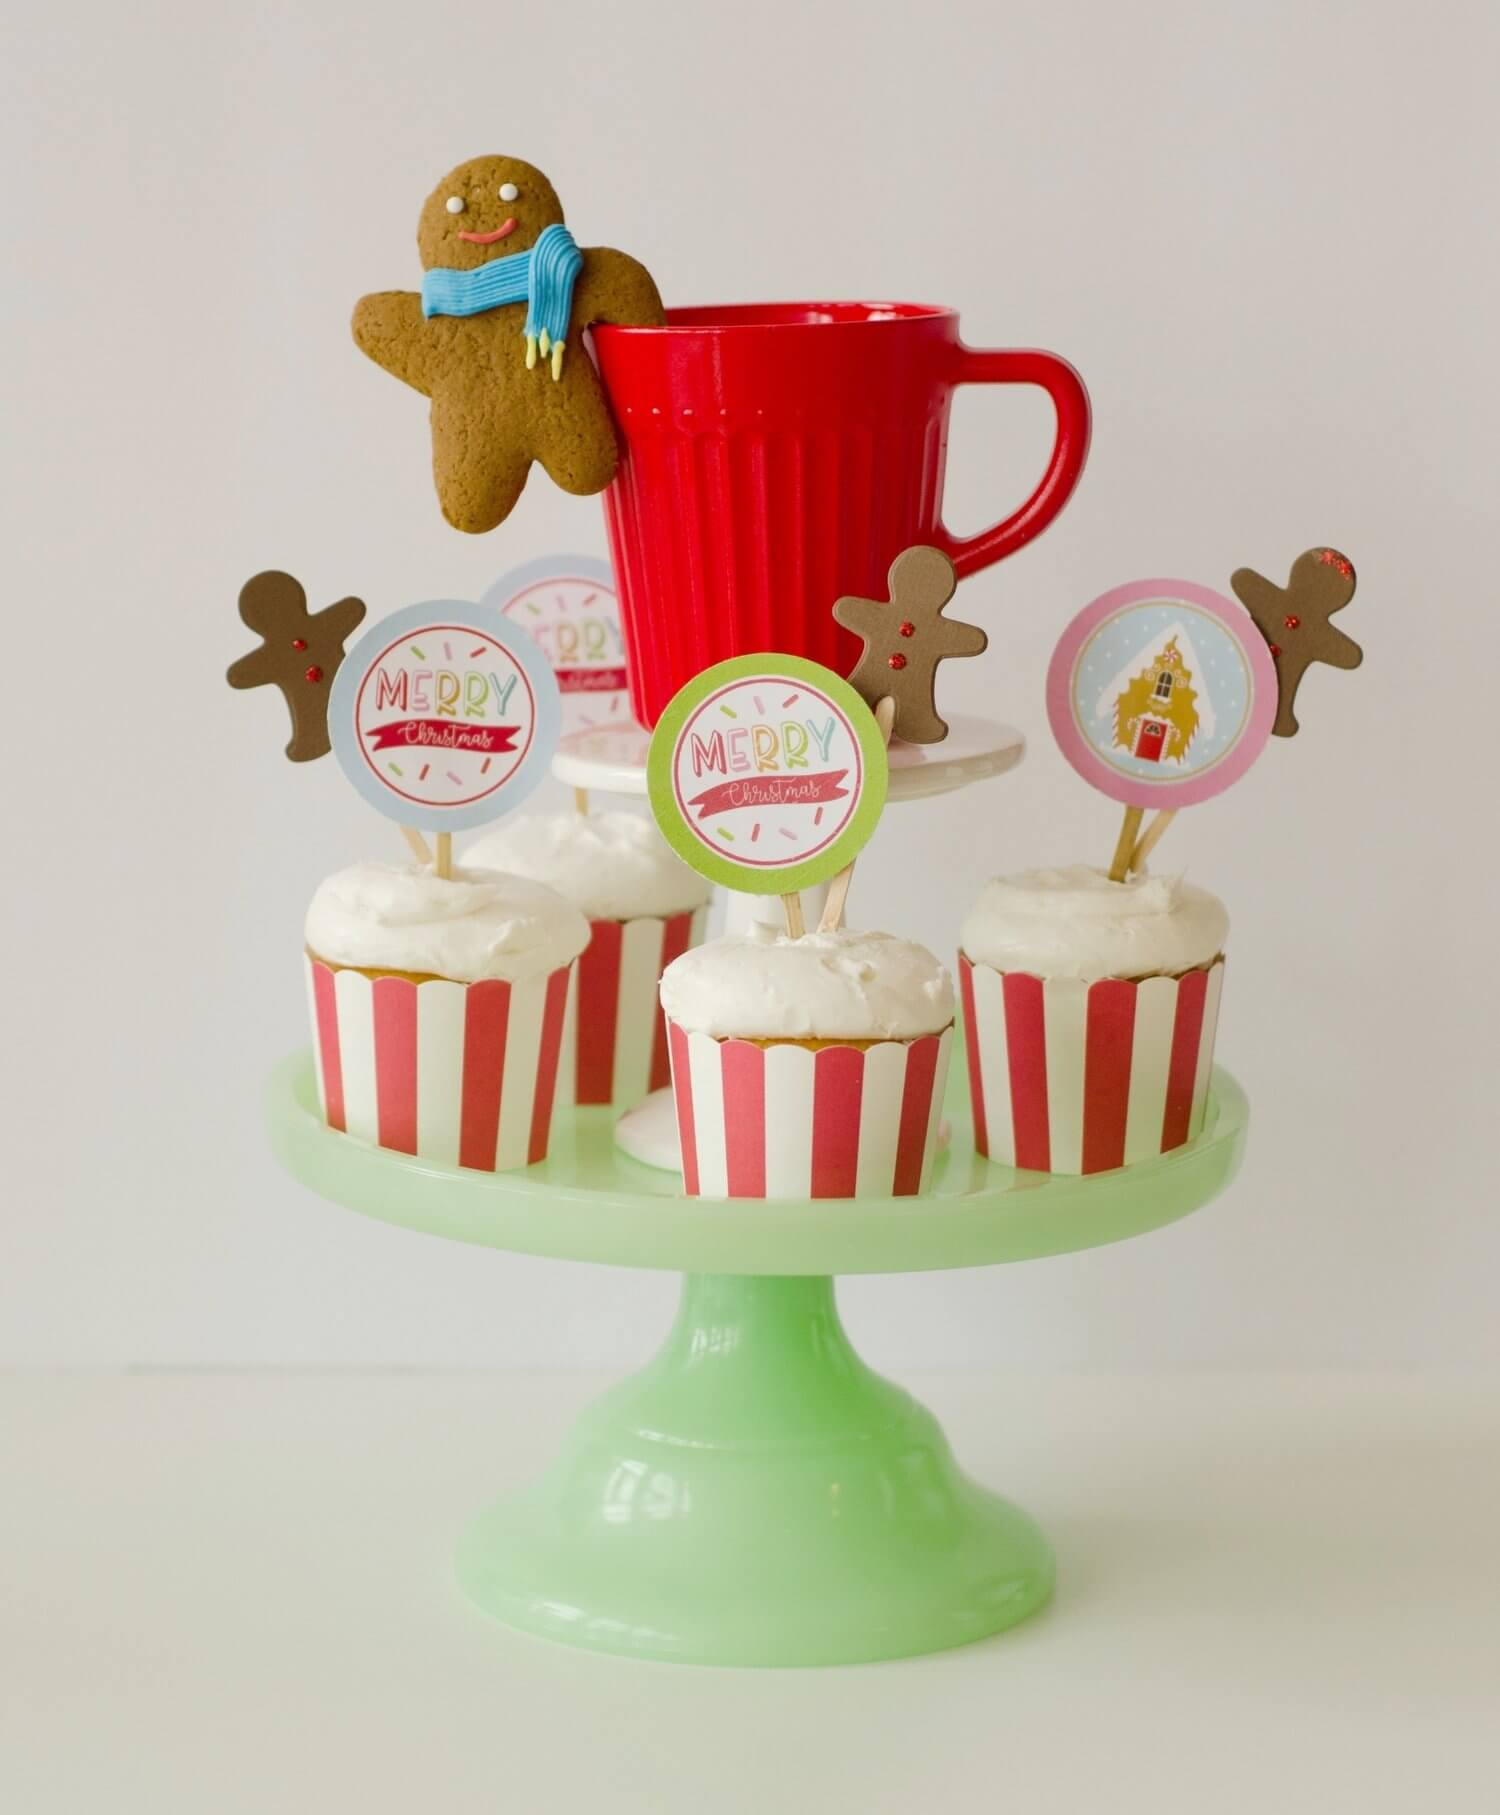 Dress up your holiday party with printable cupcake toppers and candy cane striped cupcake wrappers. See more from this Cookies for Santa party on www.minteventdesign.com - styled by Austin, Texas based party planner Mint Event Design. #holidayparty #holidaypartyideas #christmaspartyideas #partysupplies #partyprintables #cupcaketoppers